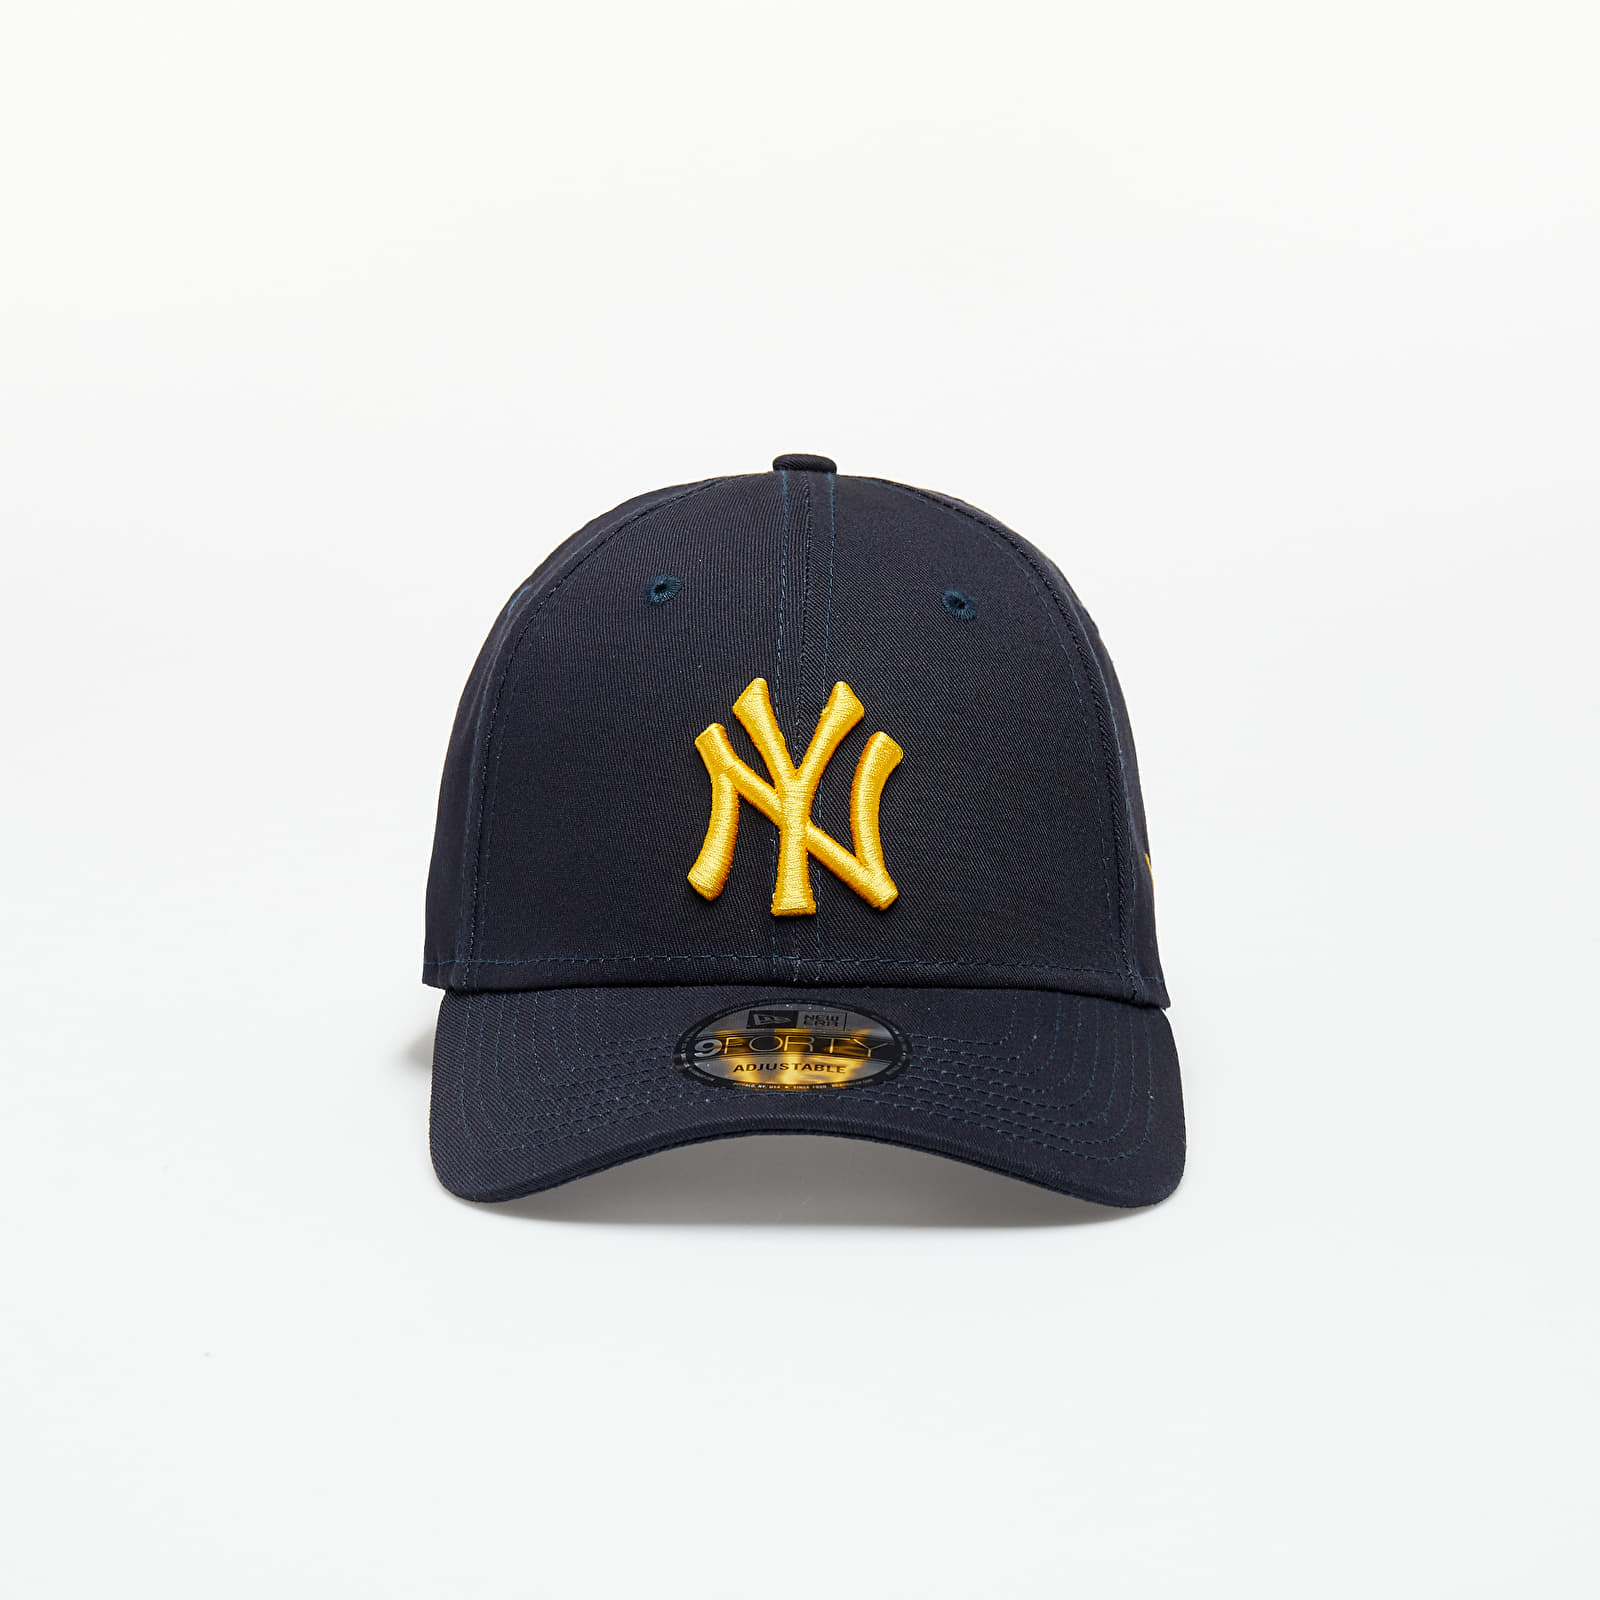 New Era 9Forty Mlb League Essential New York Yankees Navy/ Gold